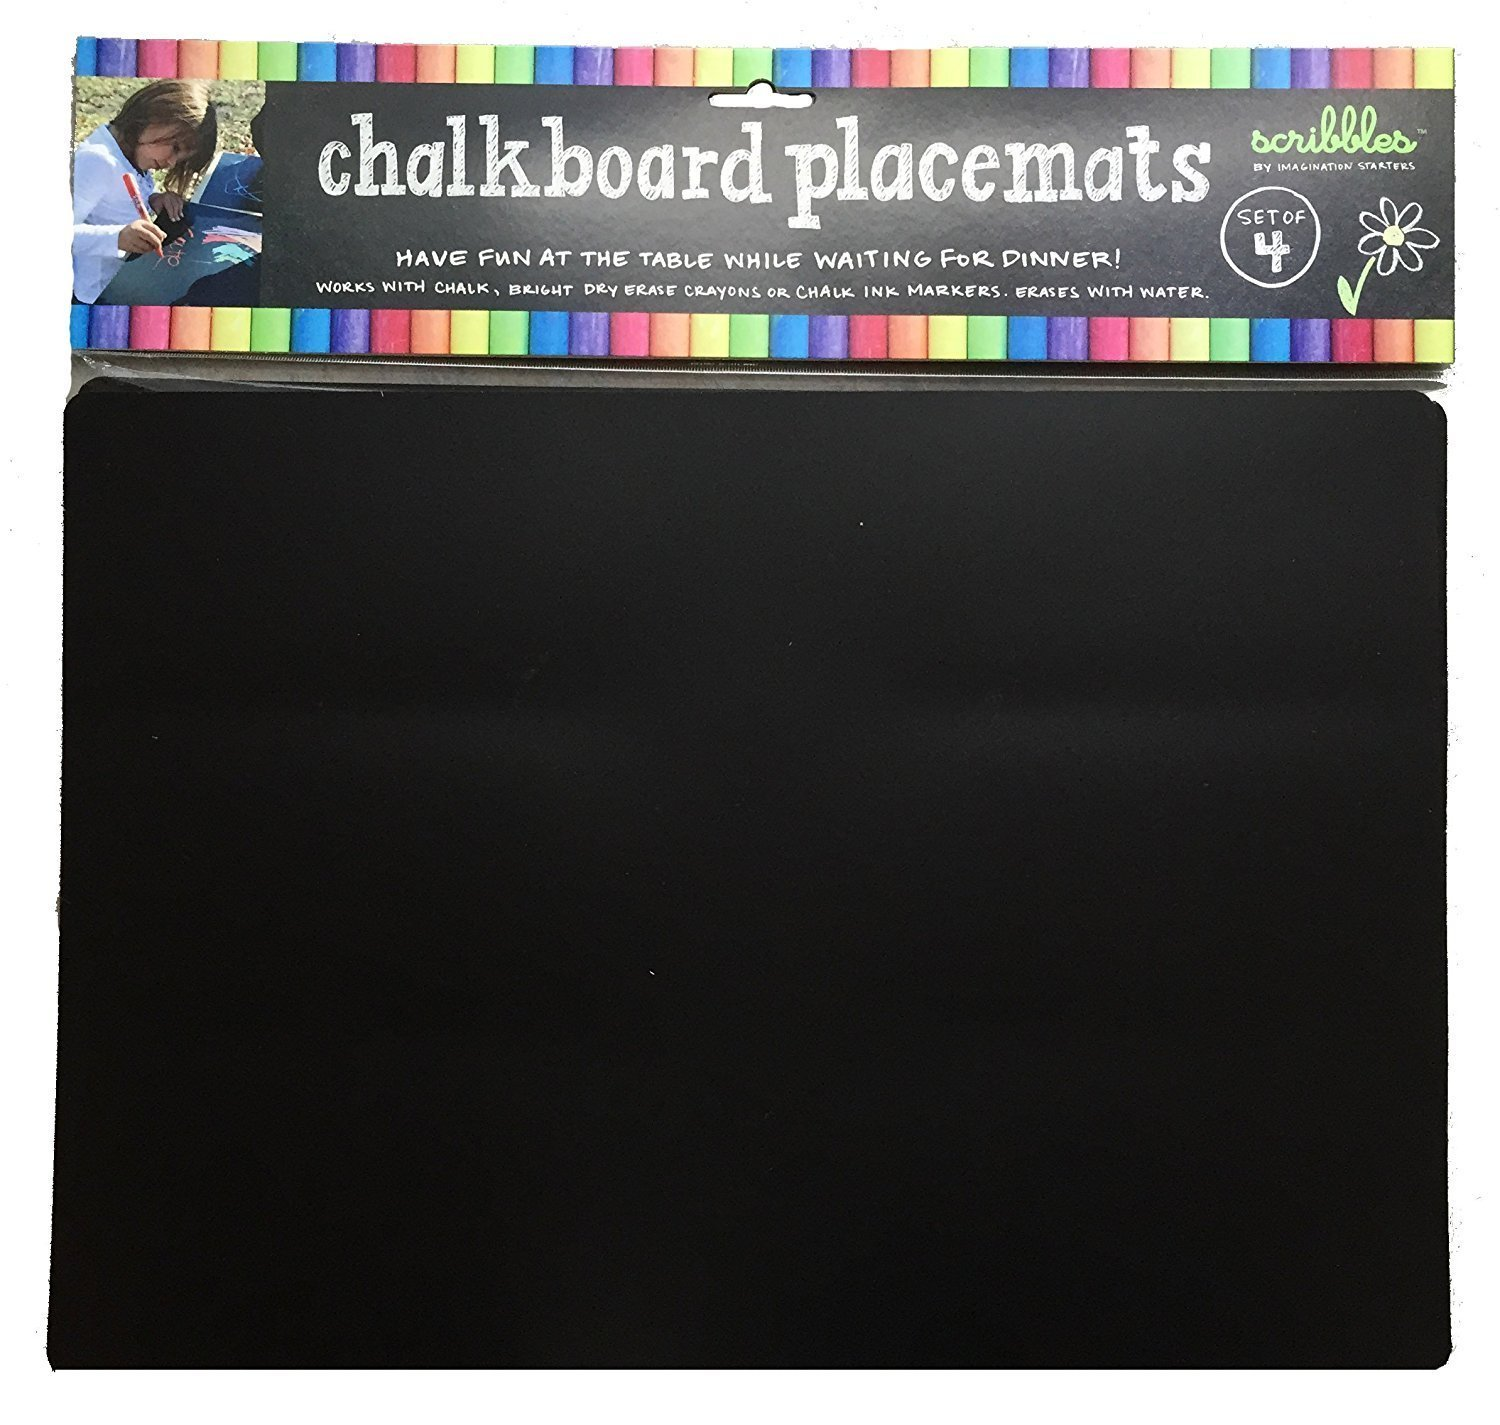 Imagination Starters Reusable Washable 12'' x 17'' Flexi-mat Chalkboard Placemats- Draw, Color, Doodle - Set of 4